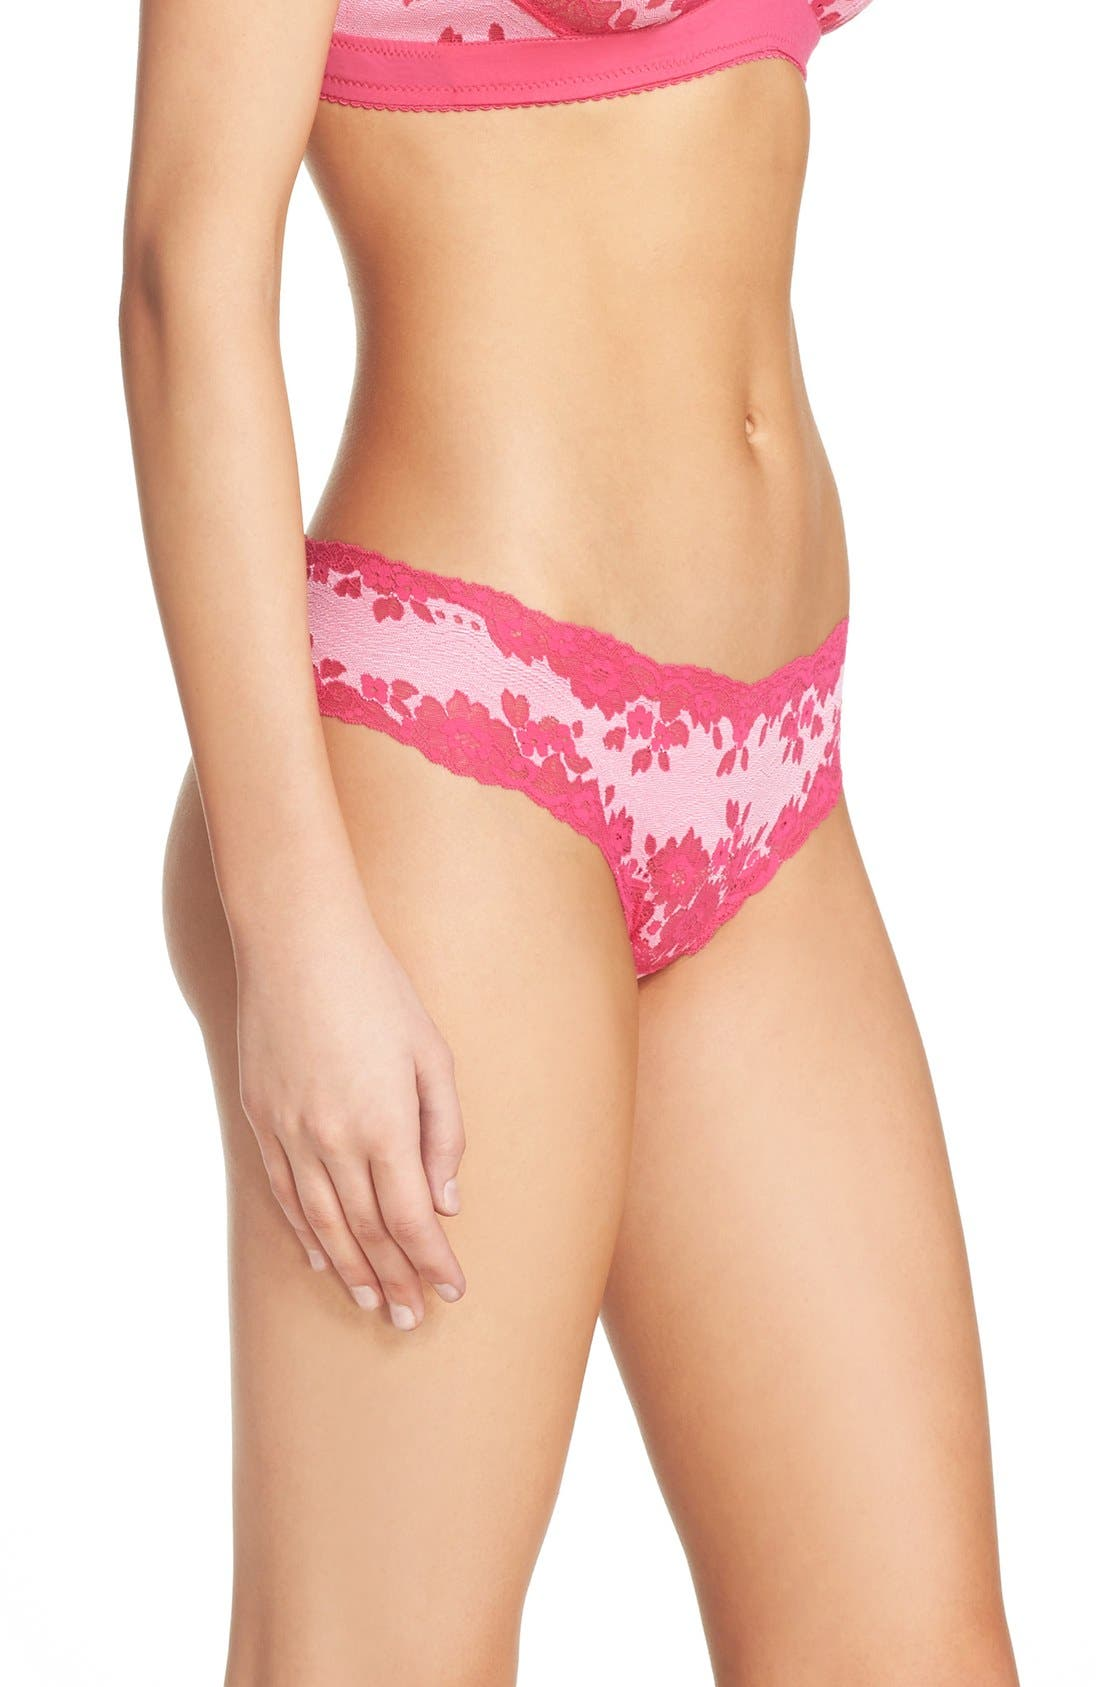 'Italia' Low Rise Thong,                             Alternate thumbnail 3, color,                             Hot Pink/ Cherry